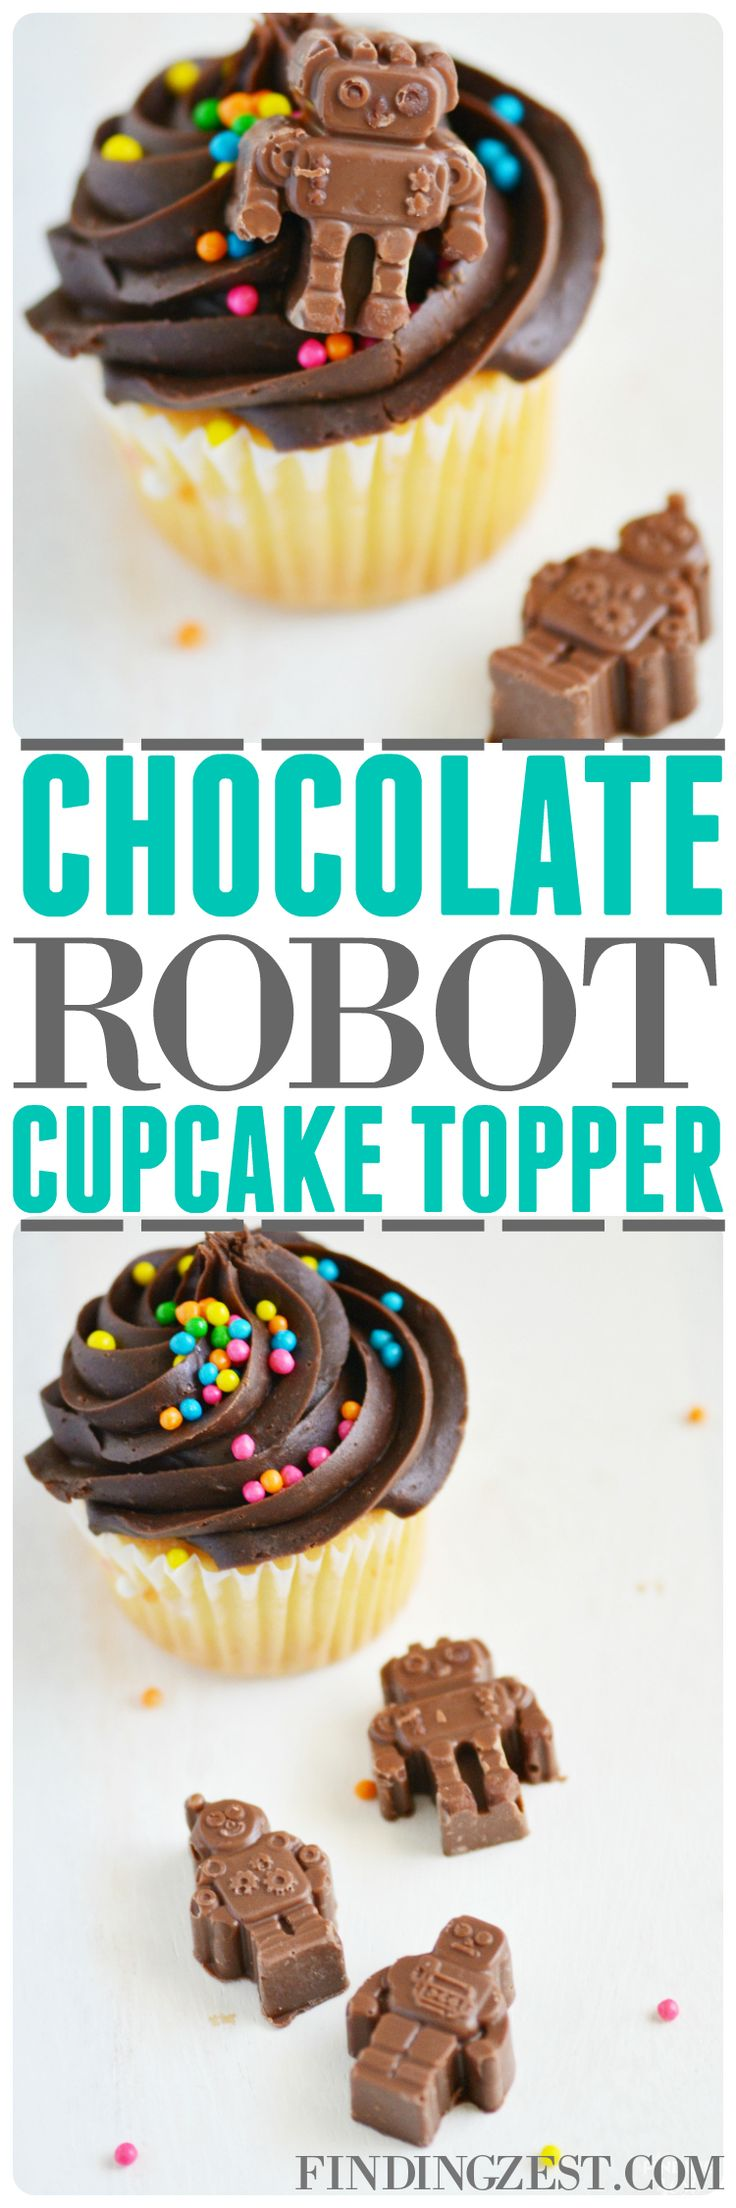 Making your own chocolate robot cupcake topper is super fun and easy! Perfect for just because or a robot birthday party celebration! They also work great for robot party favors. Yum!